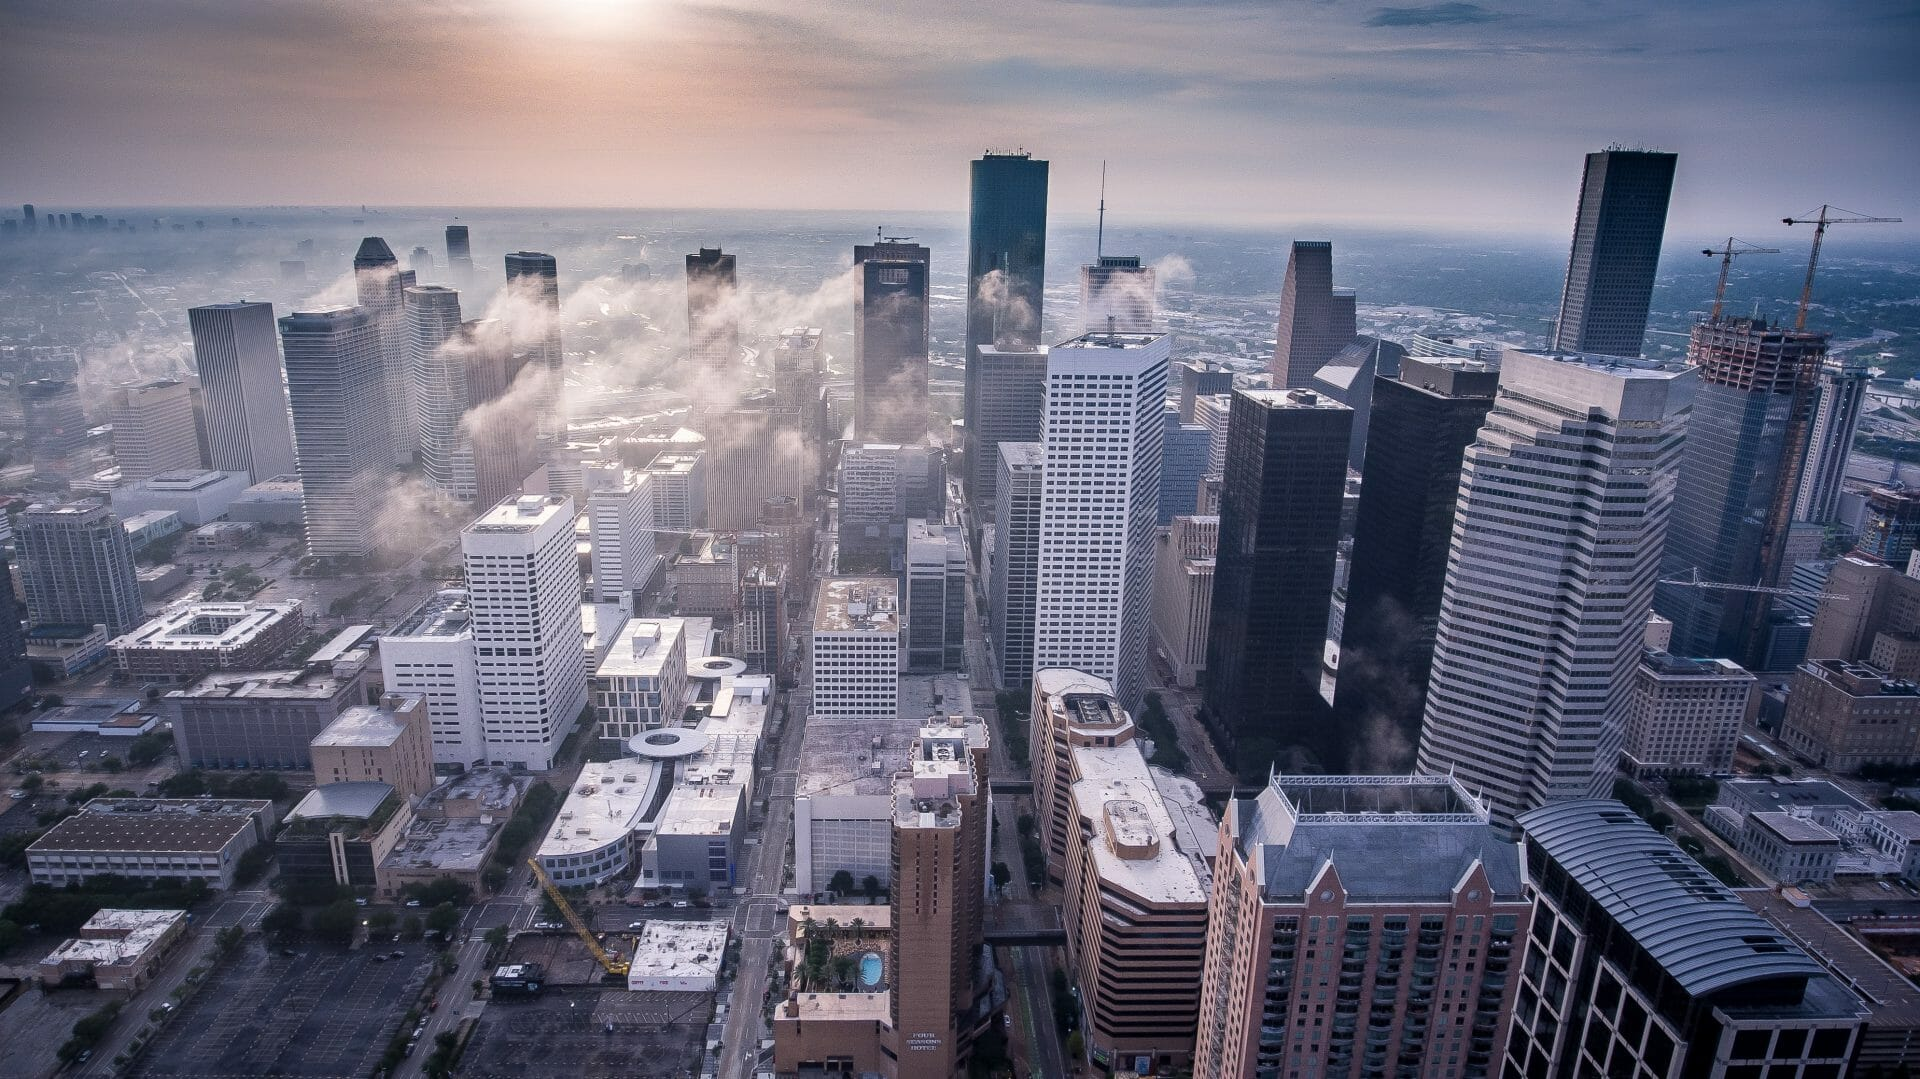 Picture of a Cityscape for Real Estate News for Investors Podcast Episode #636